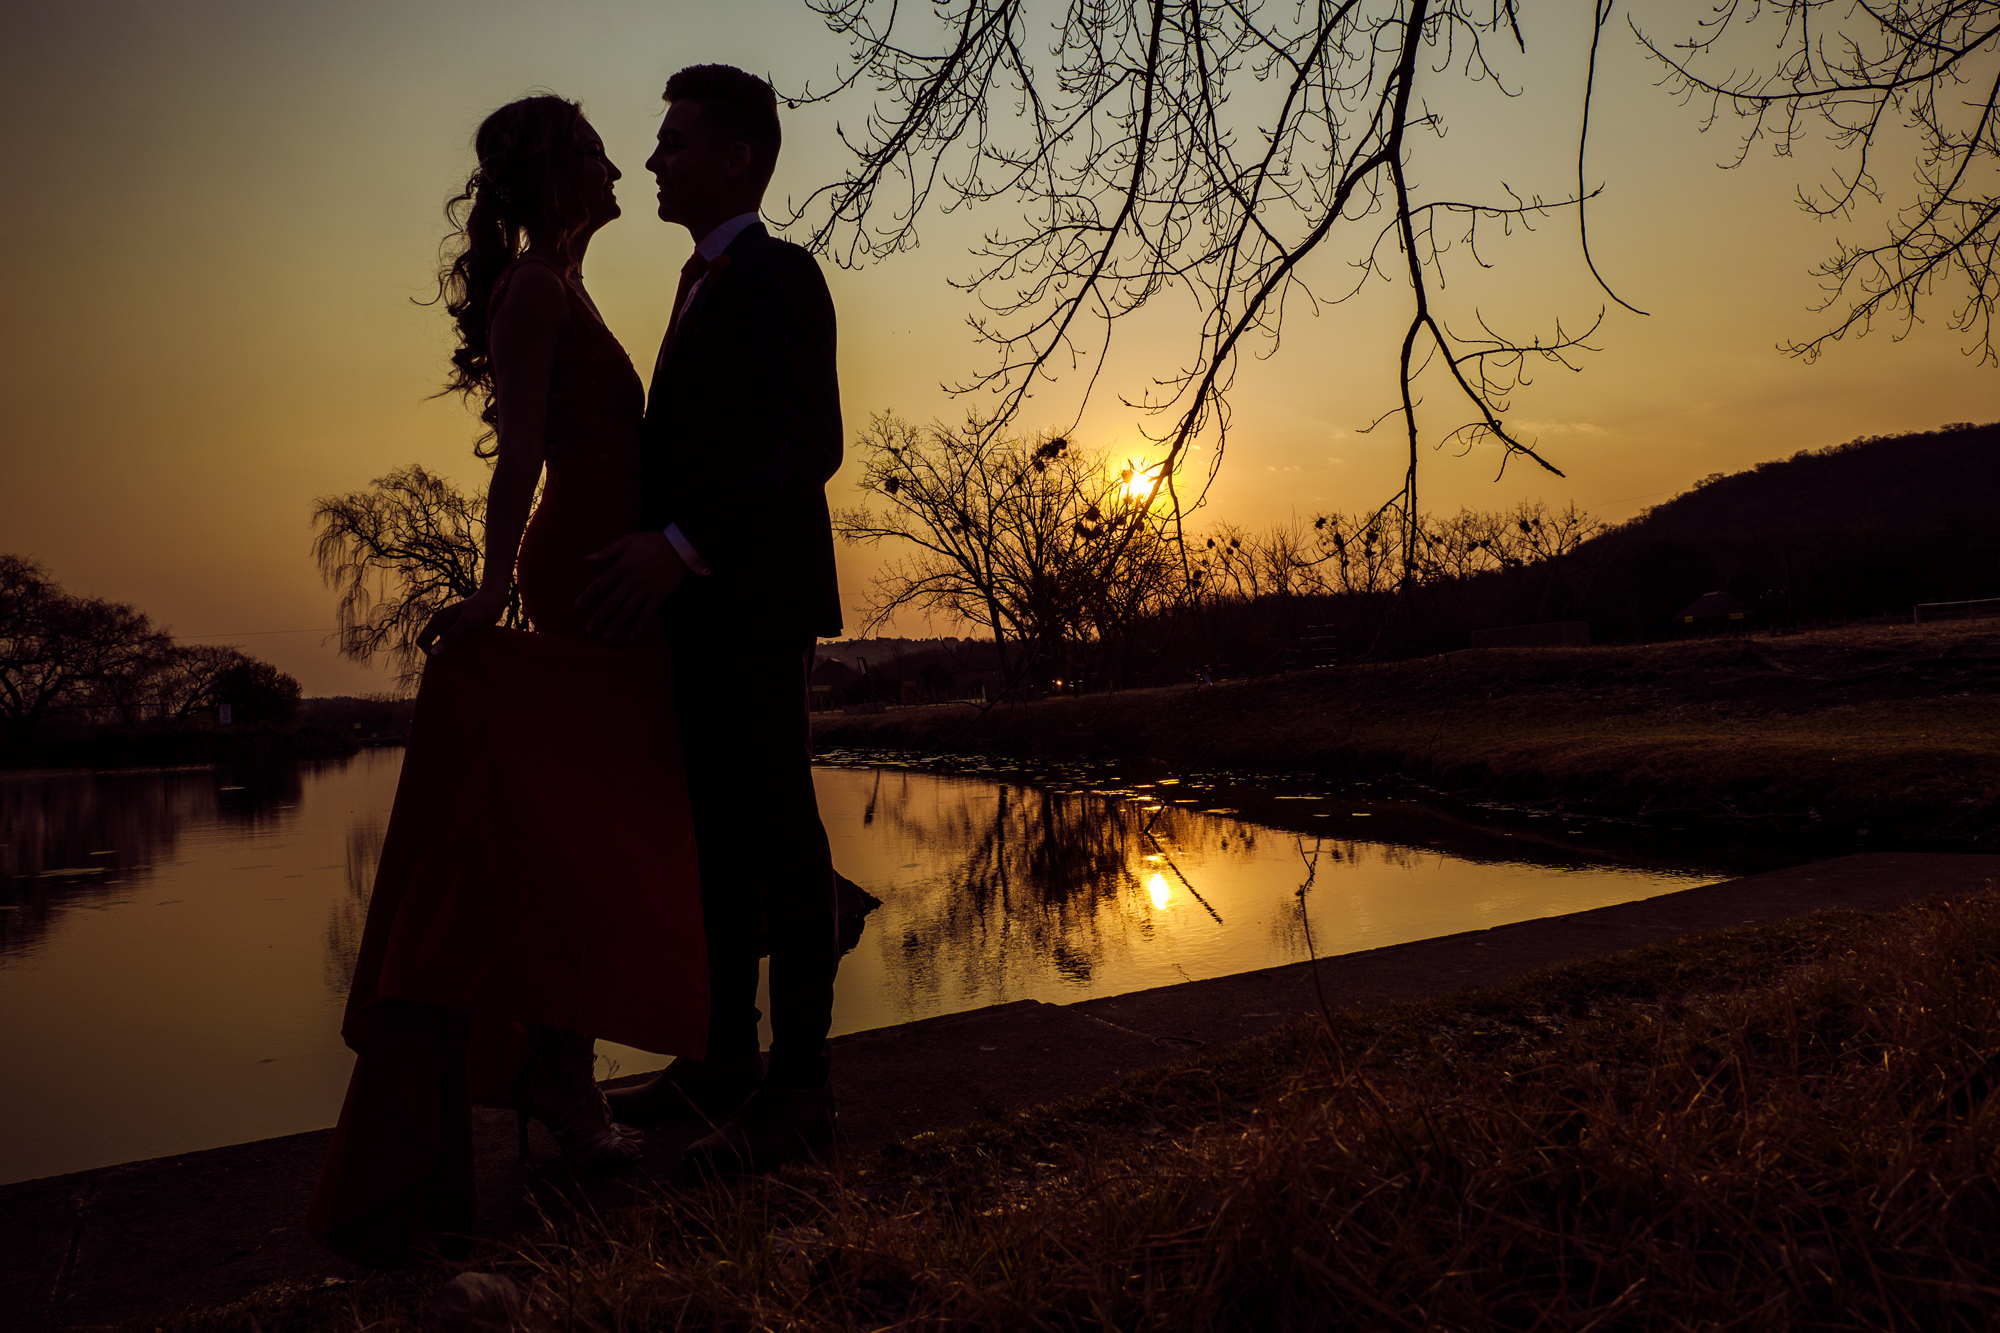 Couple dance photography - Sunset shot